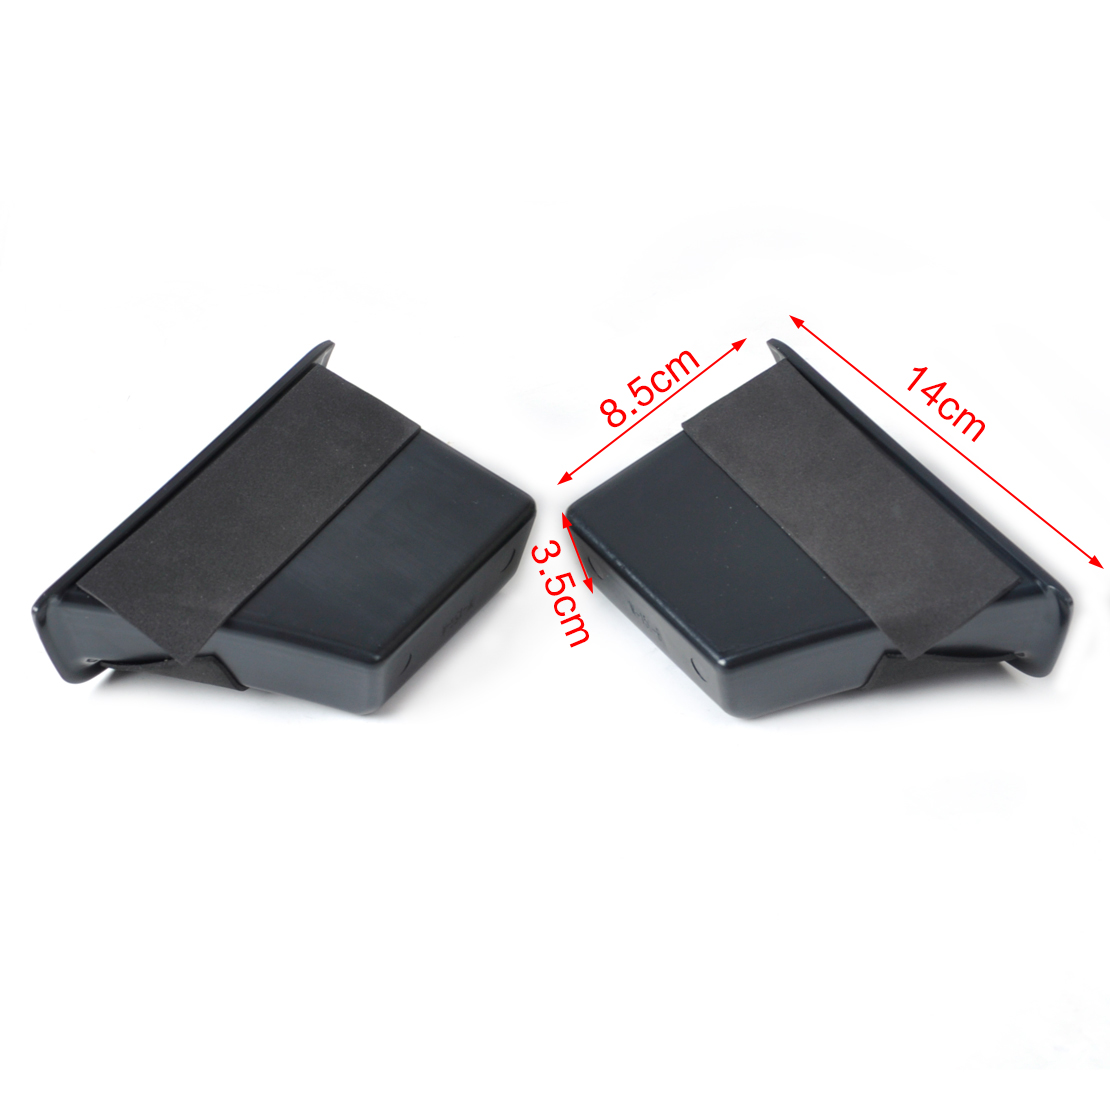 2xrear door storage box armrest container phone holder for for Mercedes benz phone mount